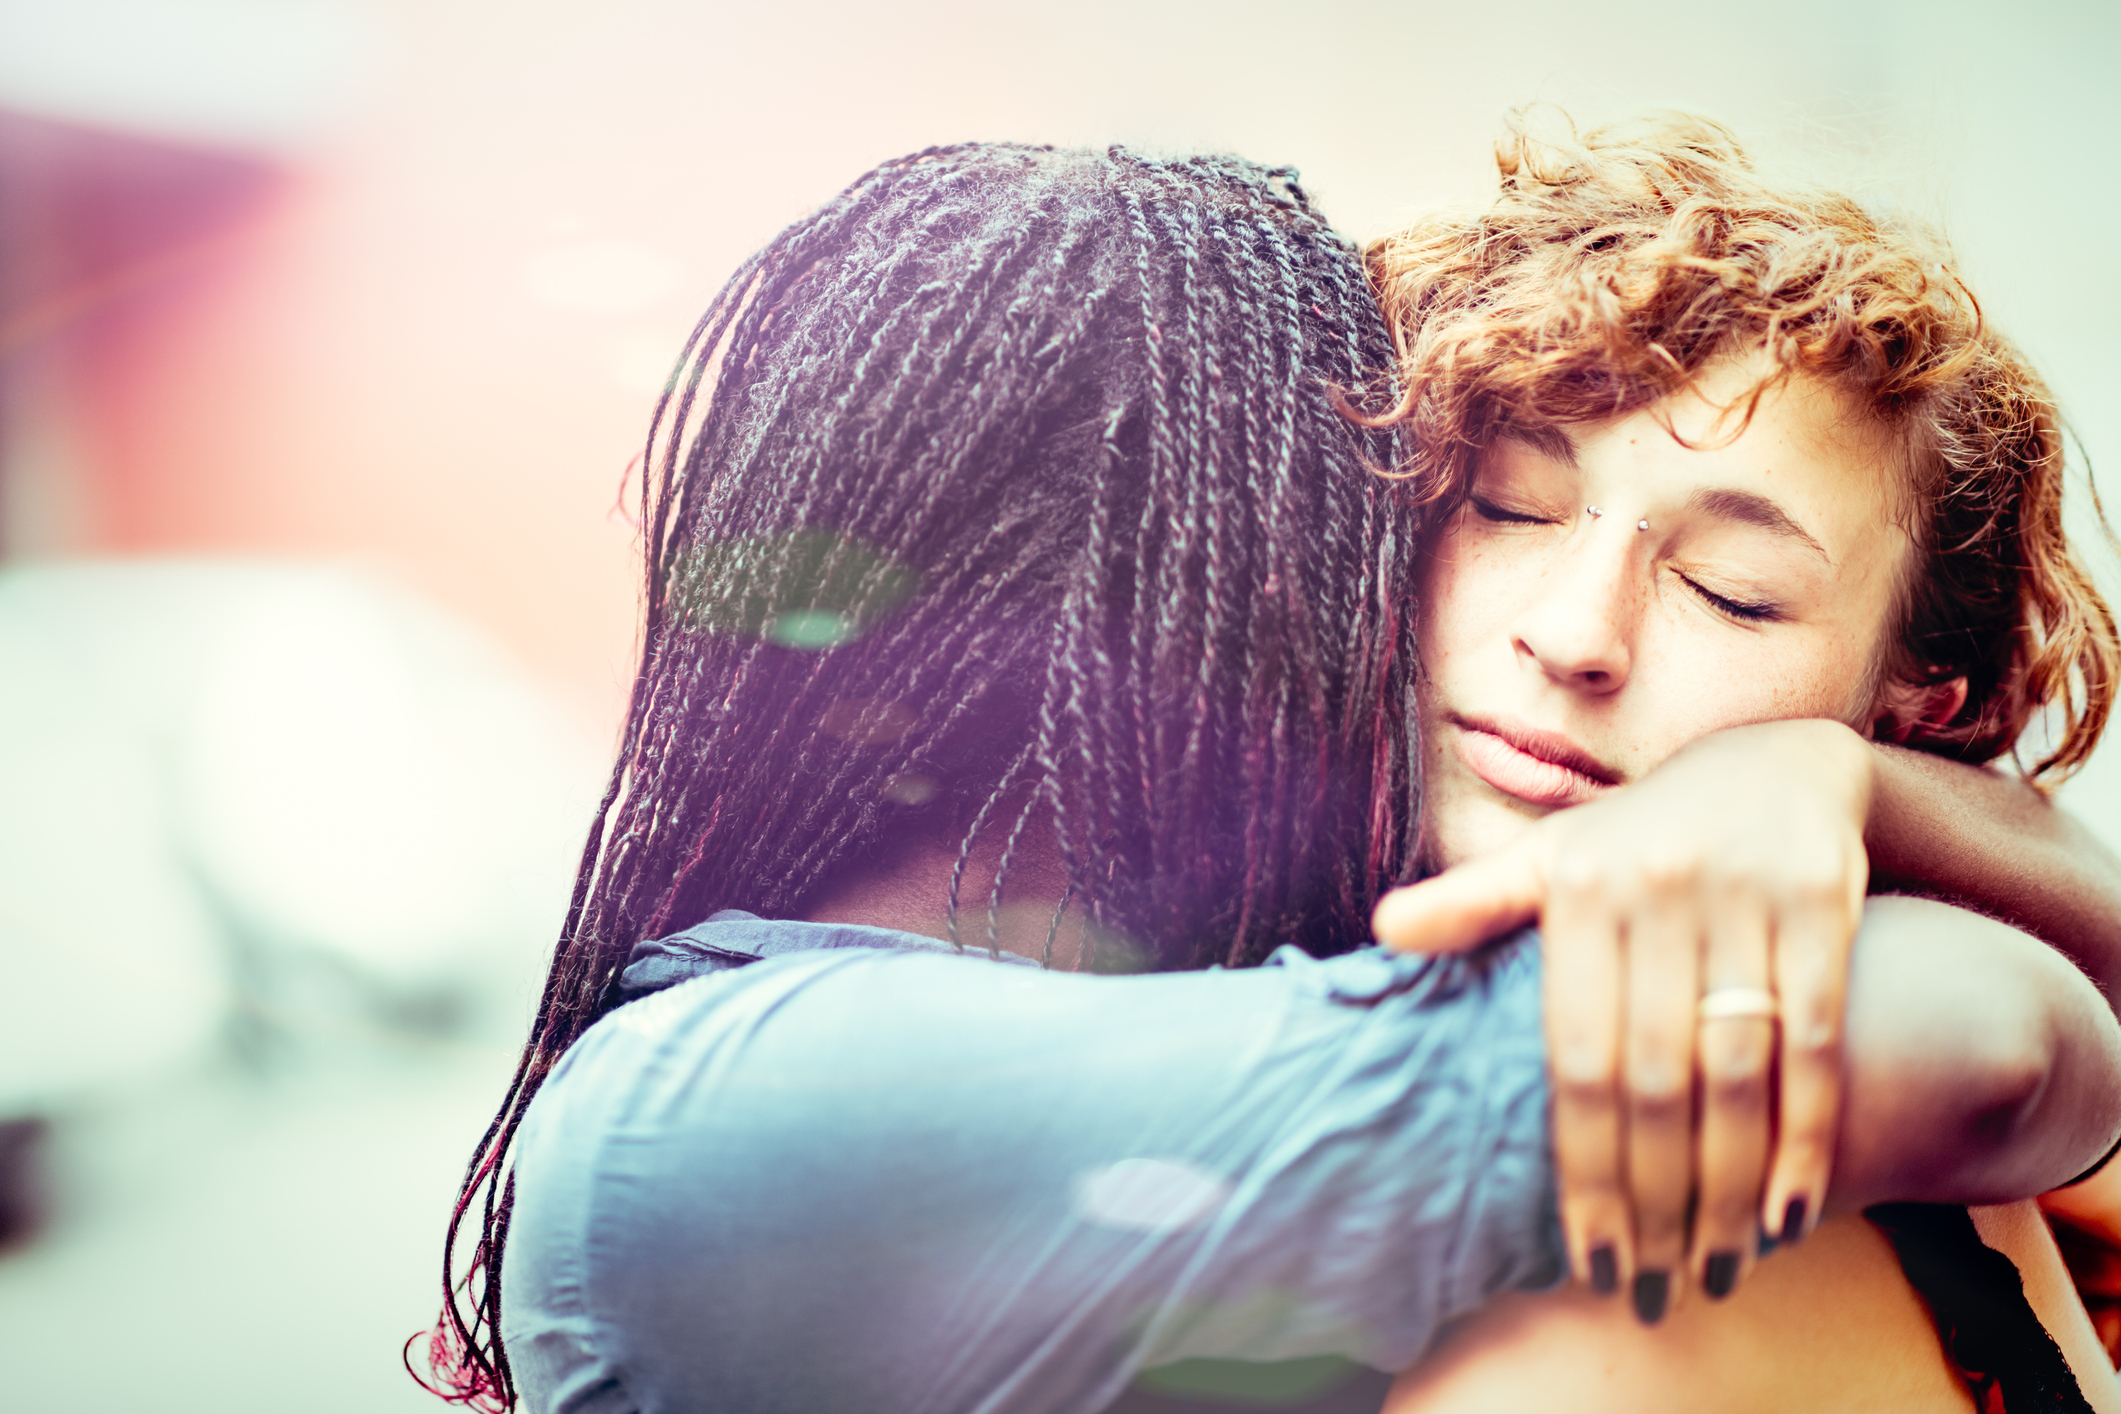 15 questions to ask your best friend about their mental health